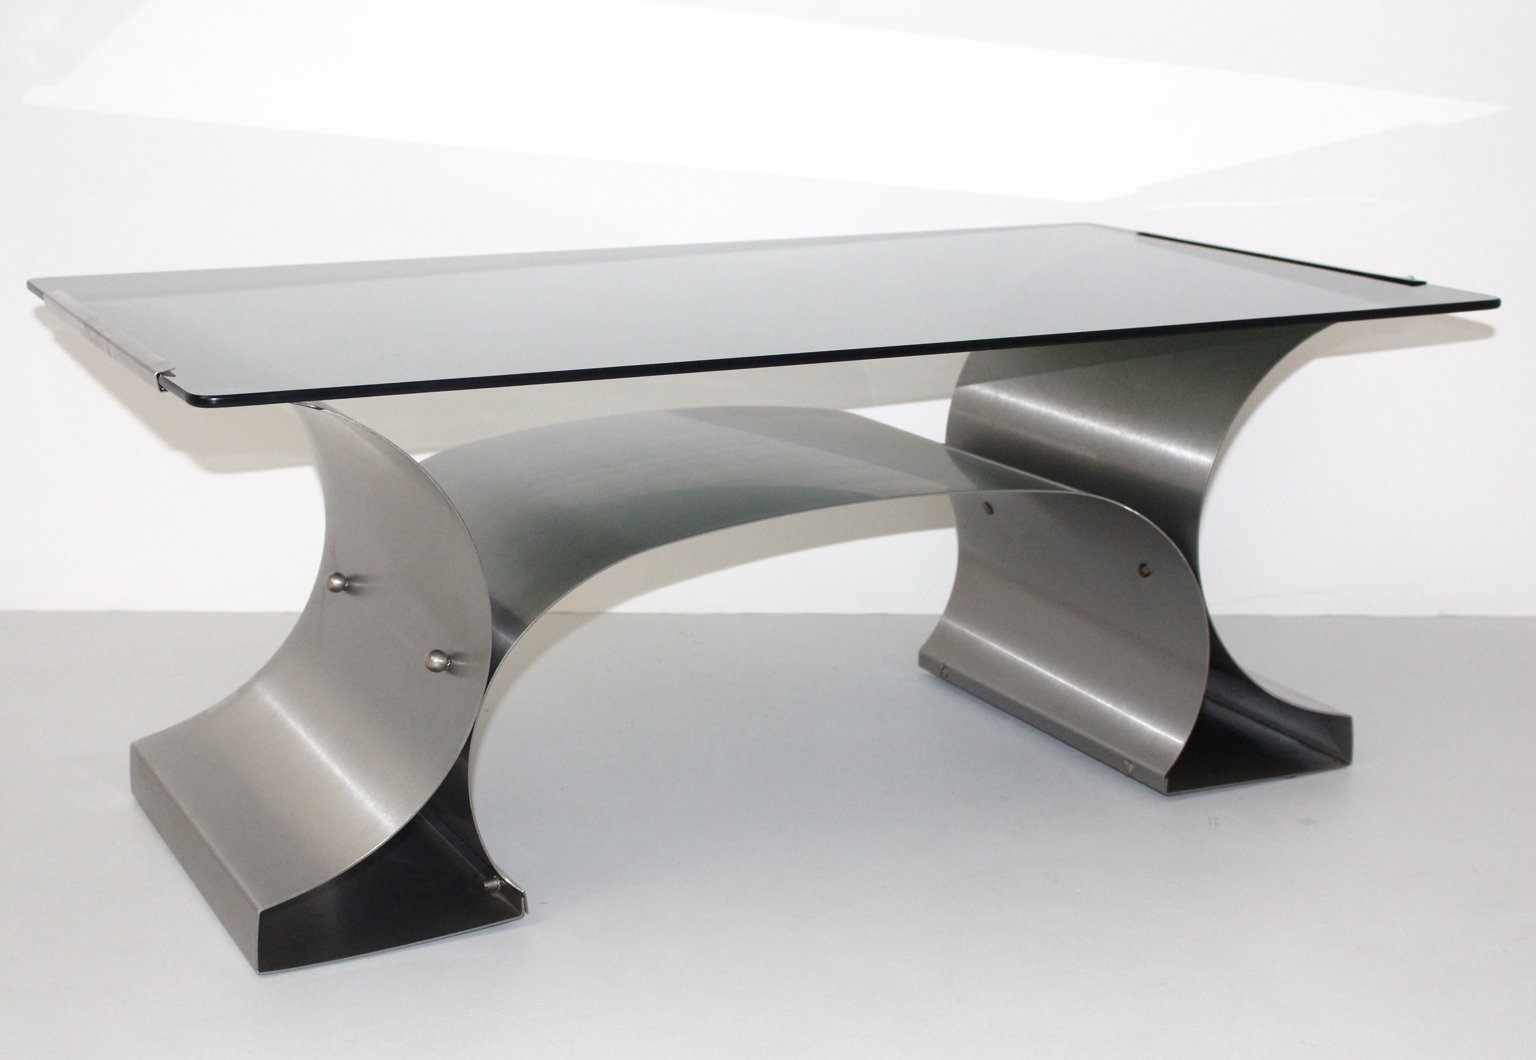 French Stainless Steel Coffee Table, 1970s for sale at Pamono